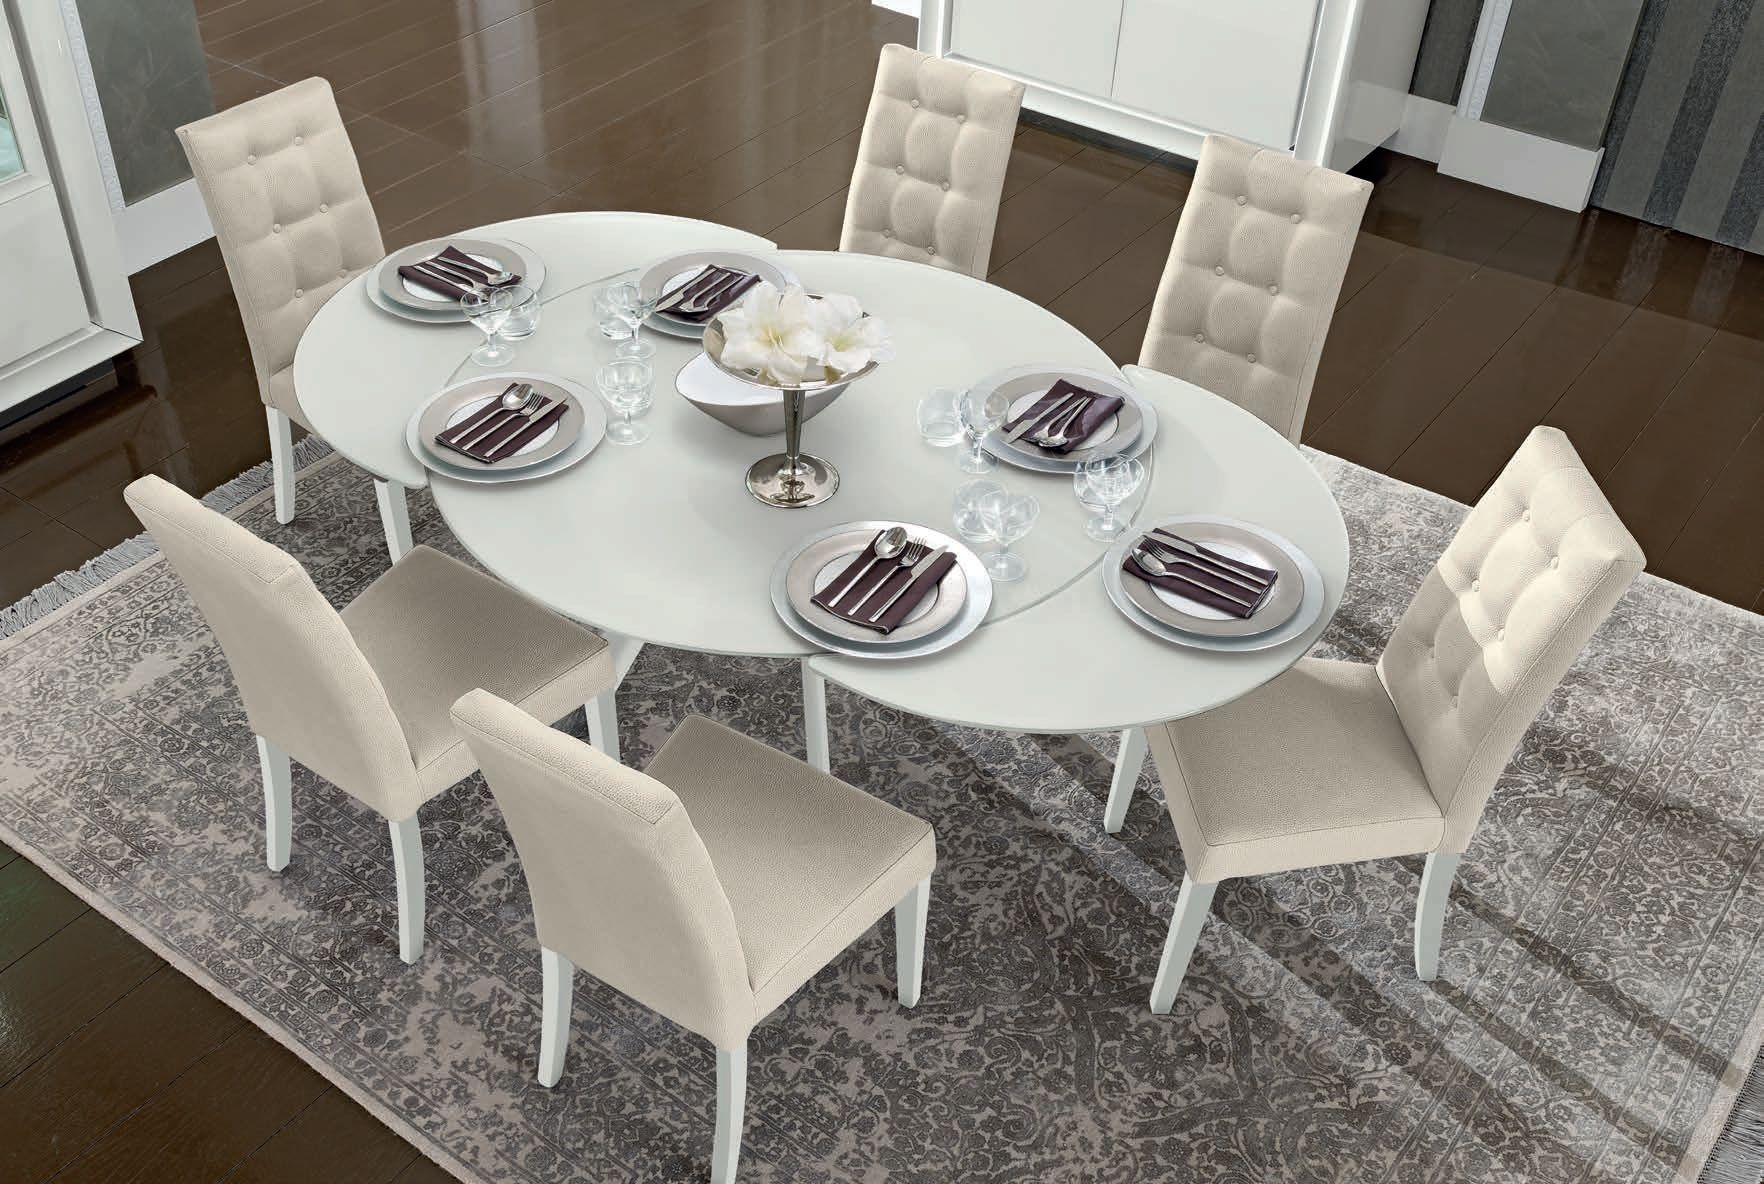 Camel Dama White Italian Dining Set - Round Extending with 4 Chairs